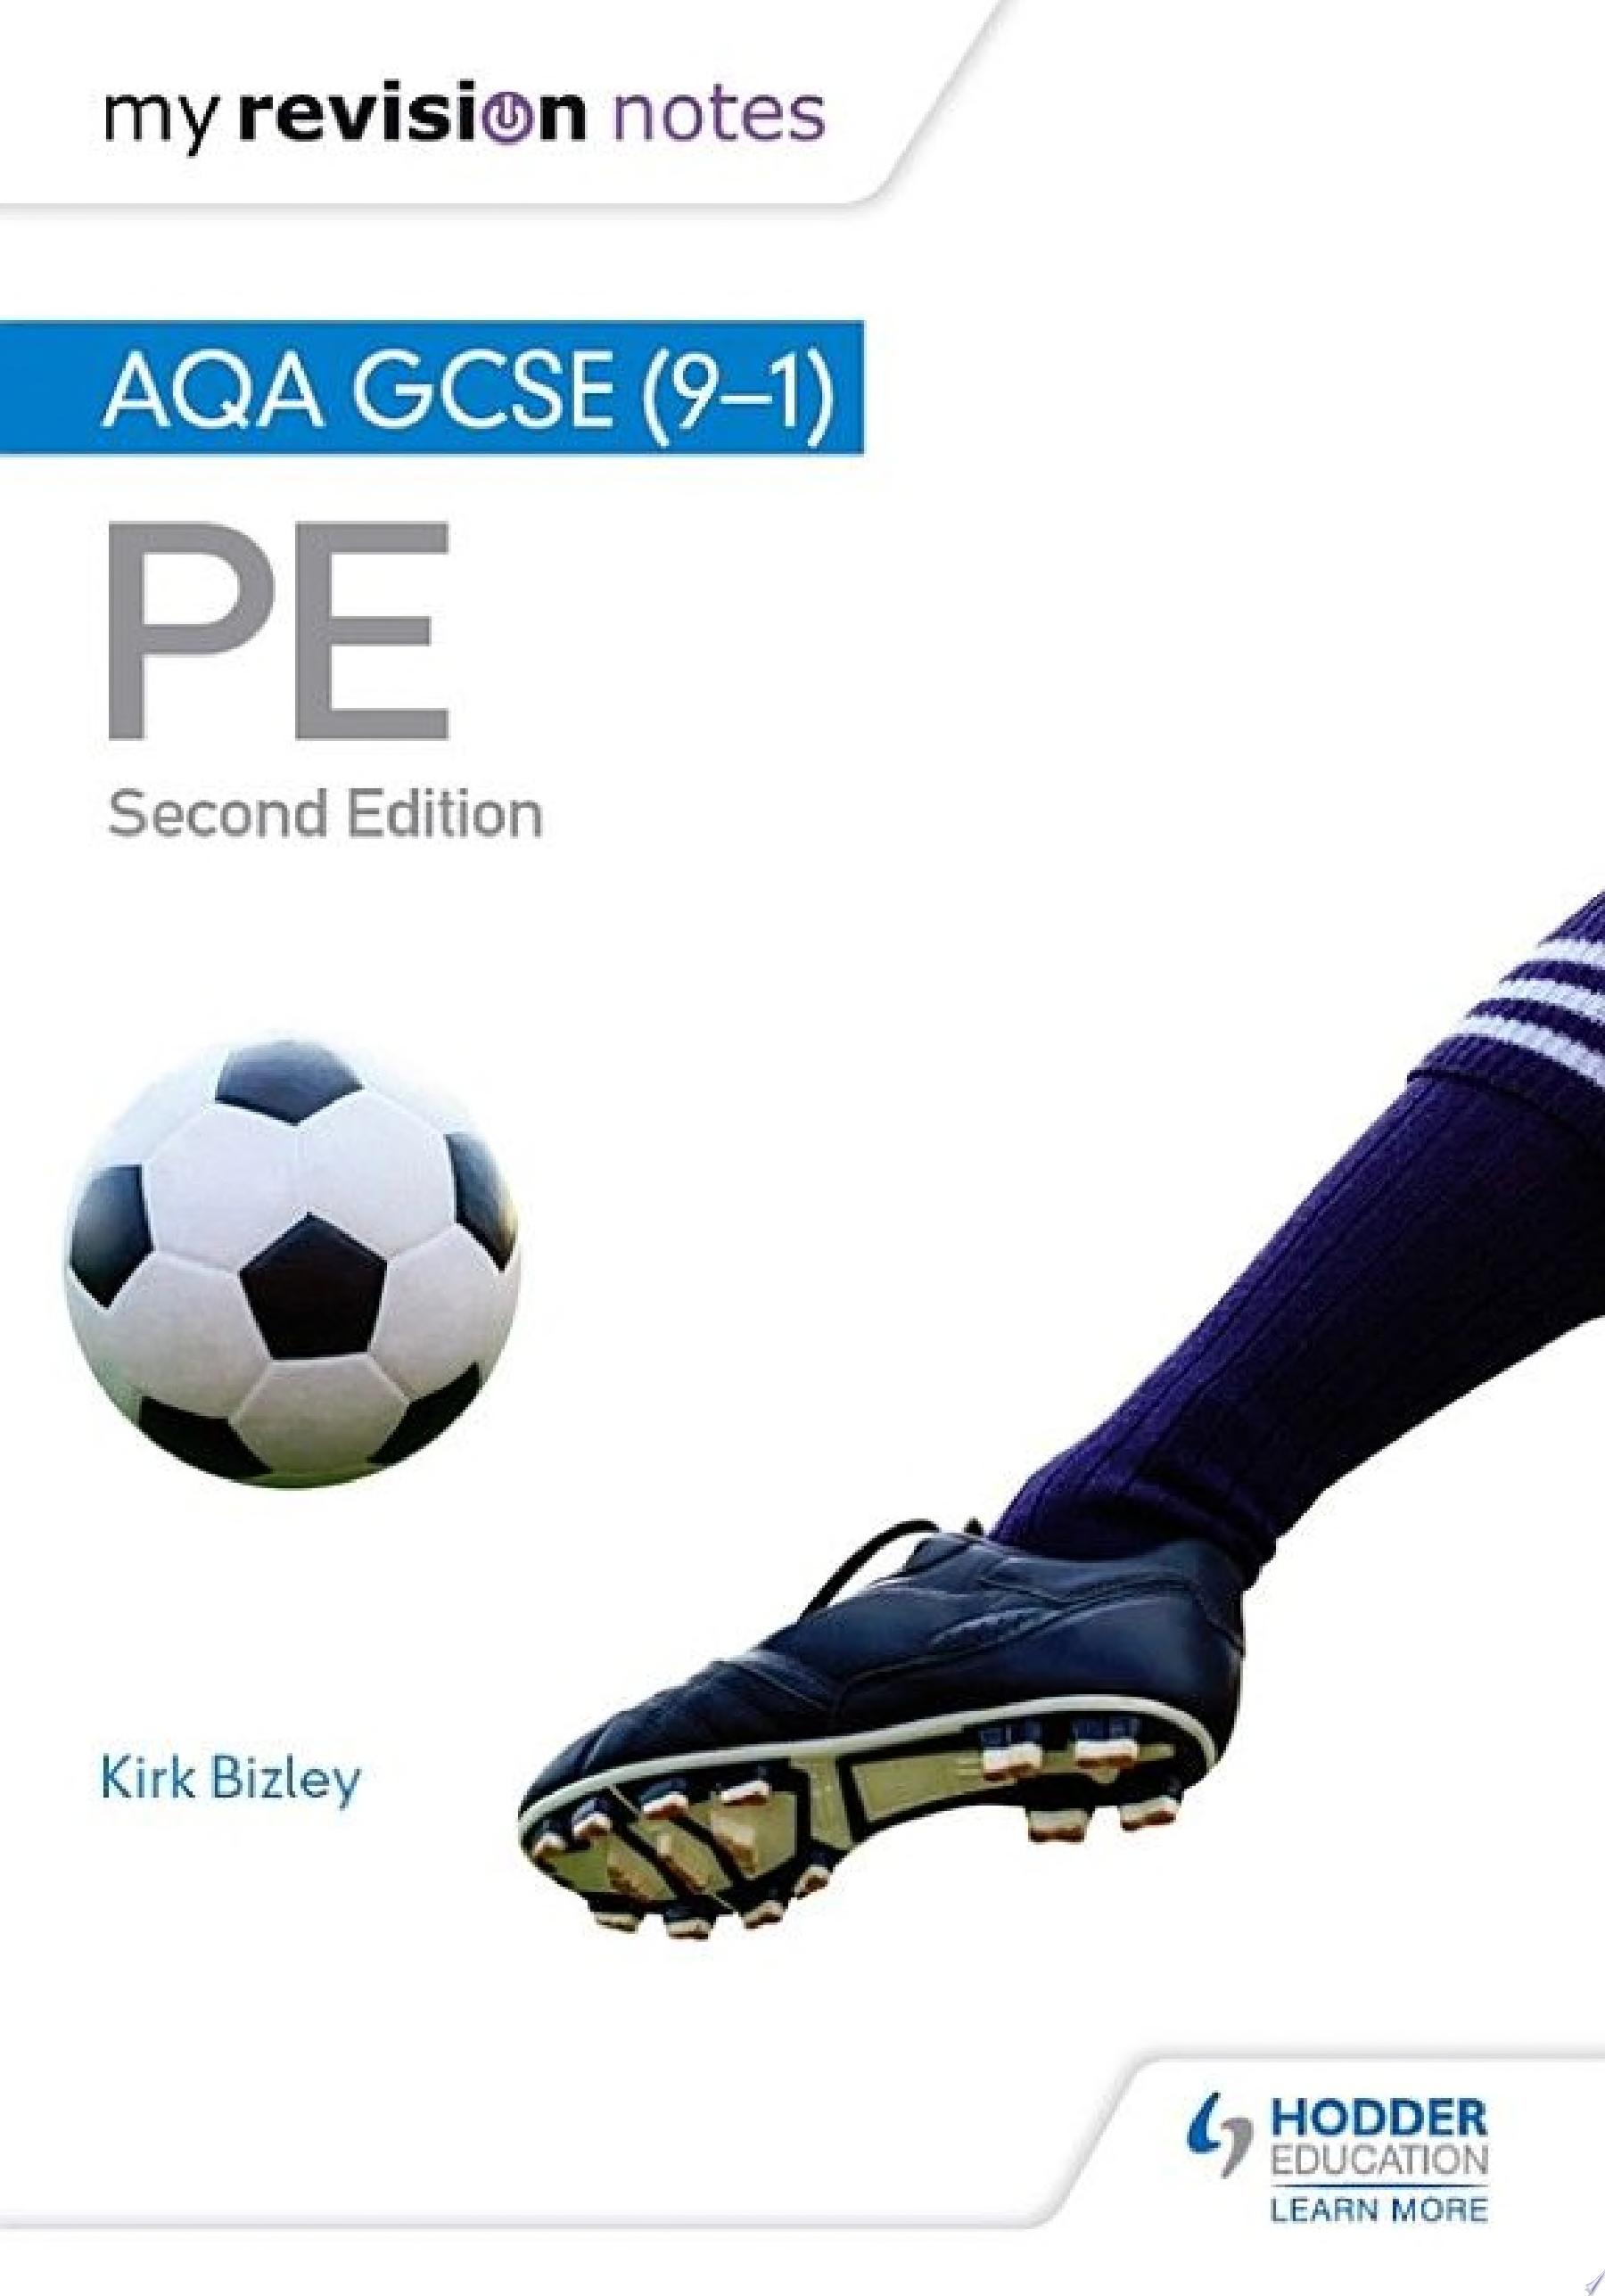 My Revision Notes  AQA GCSE  9 1  PE 2nd Edition